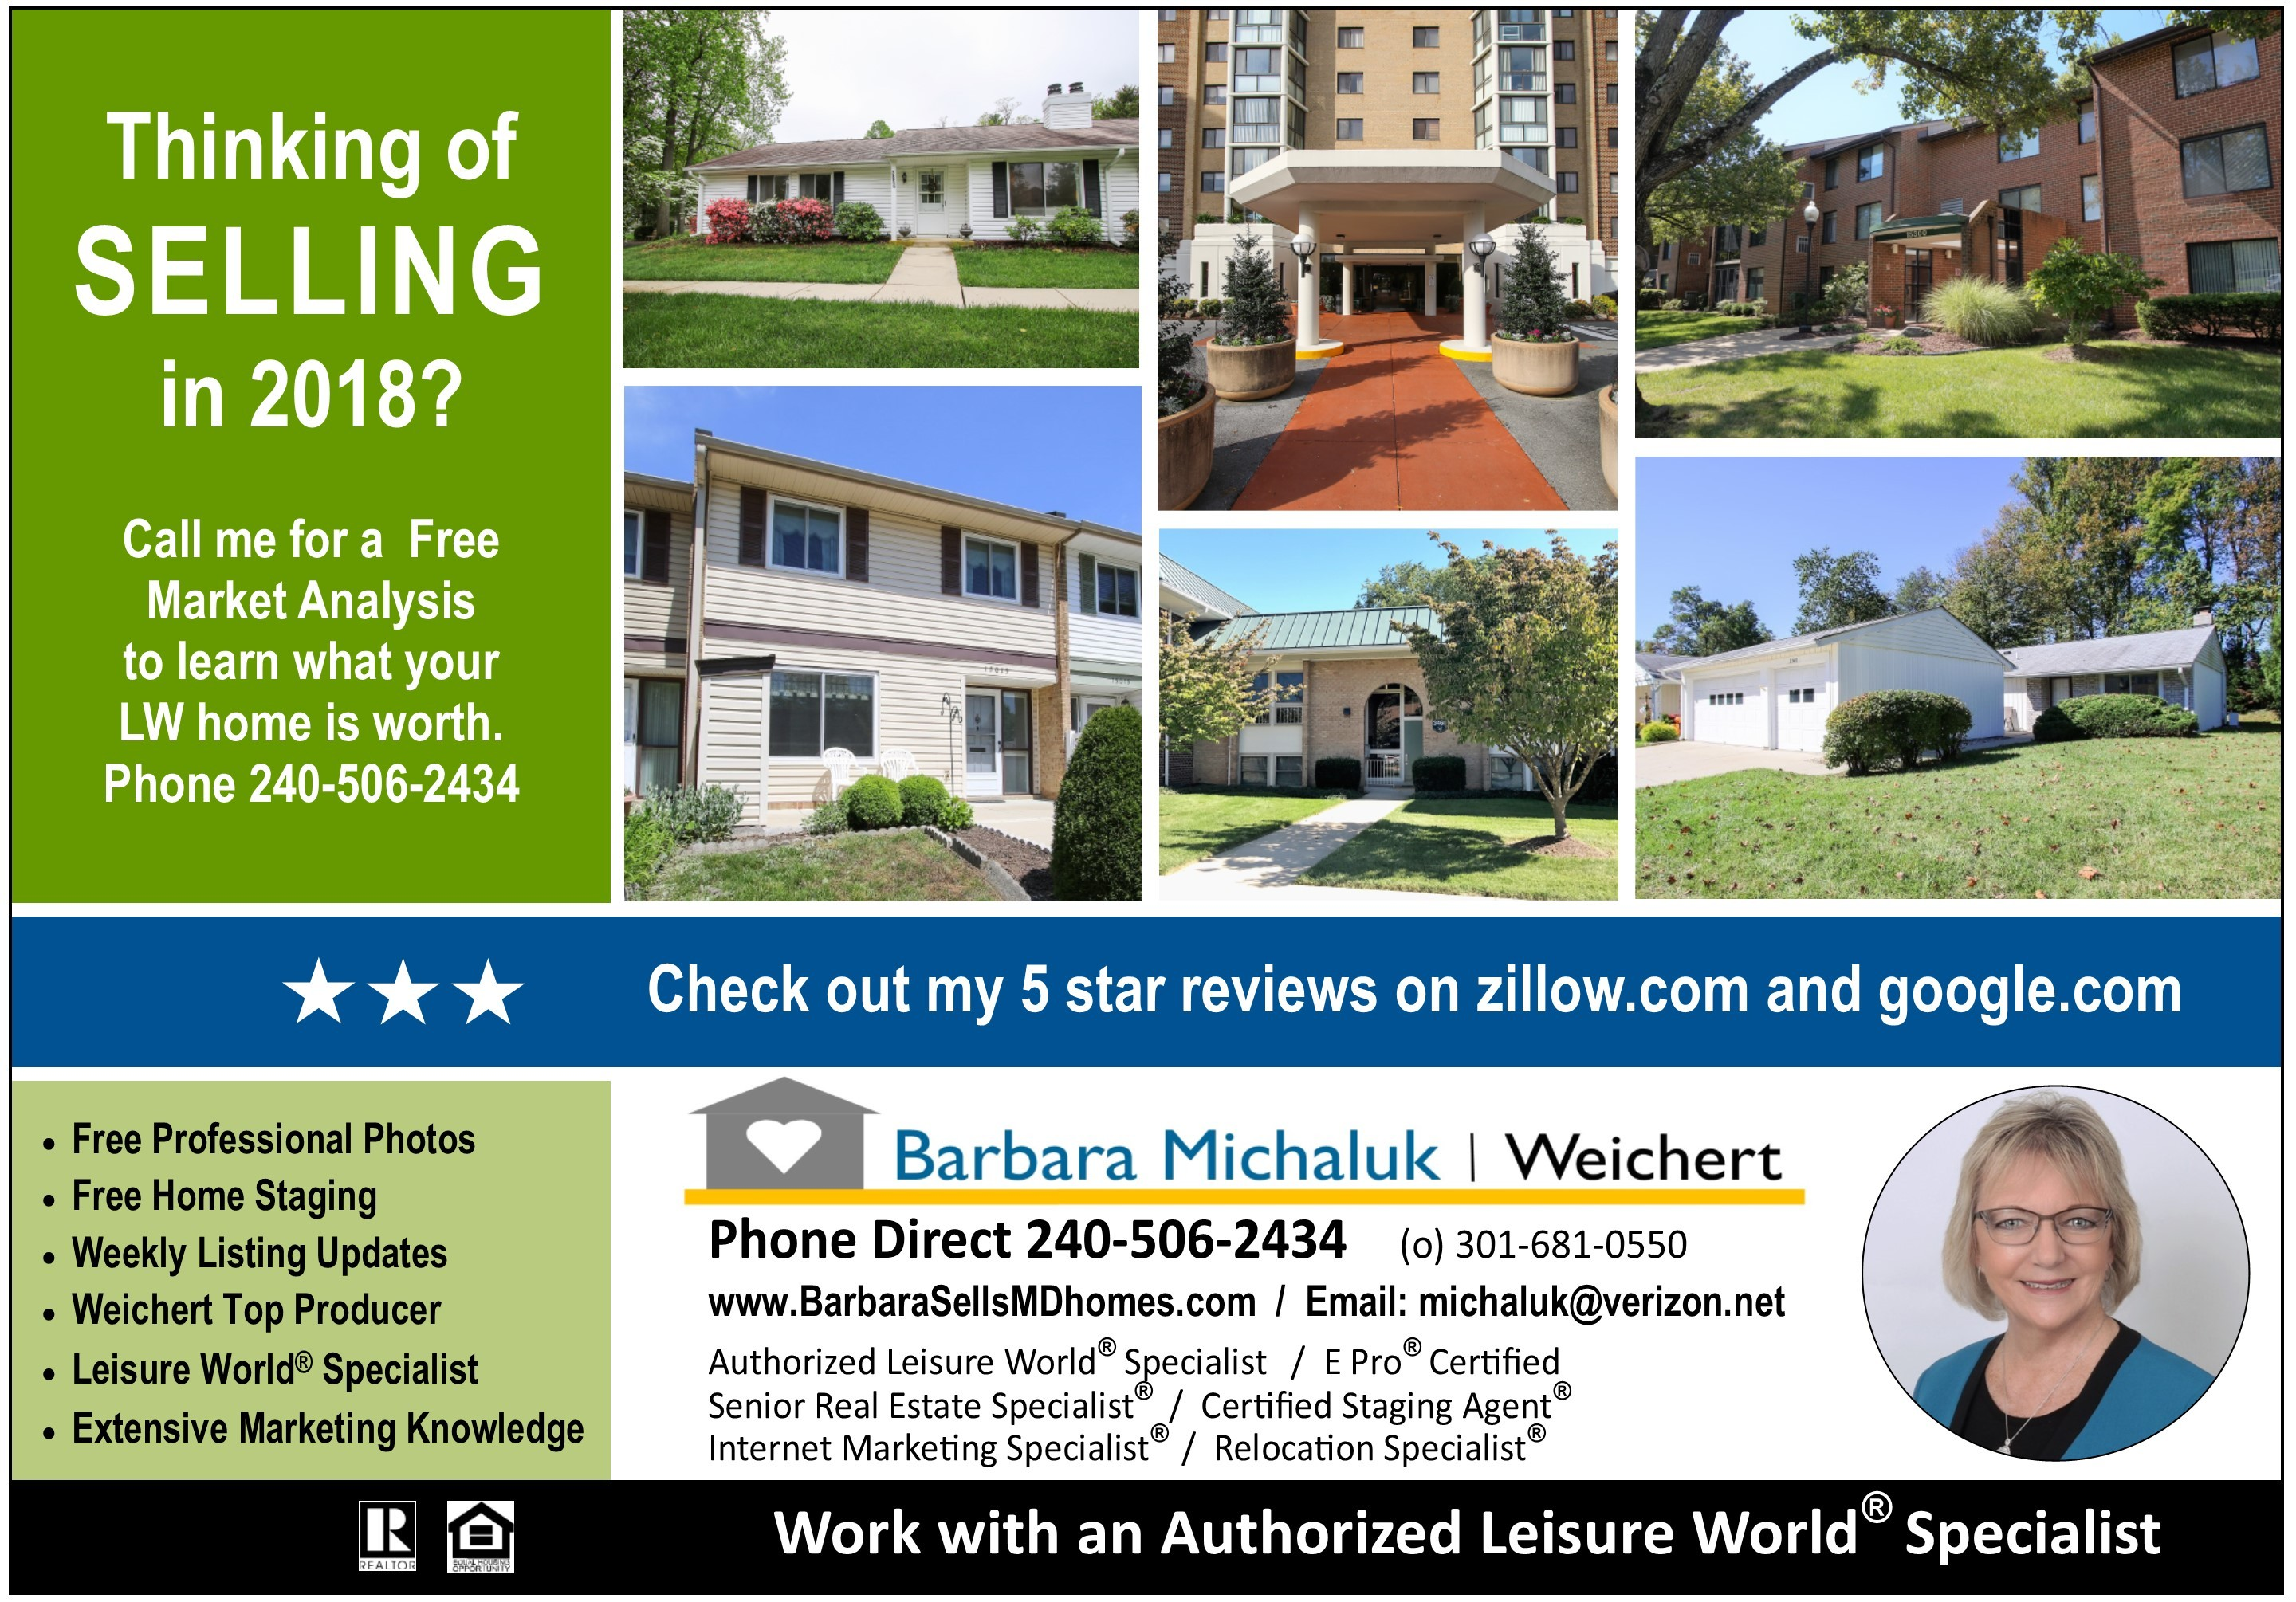 Thinking Of Selling Your Leisure World Home In 2018